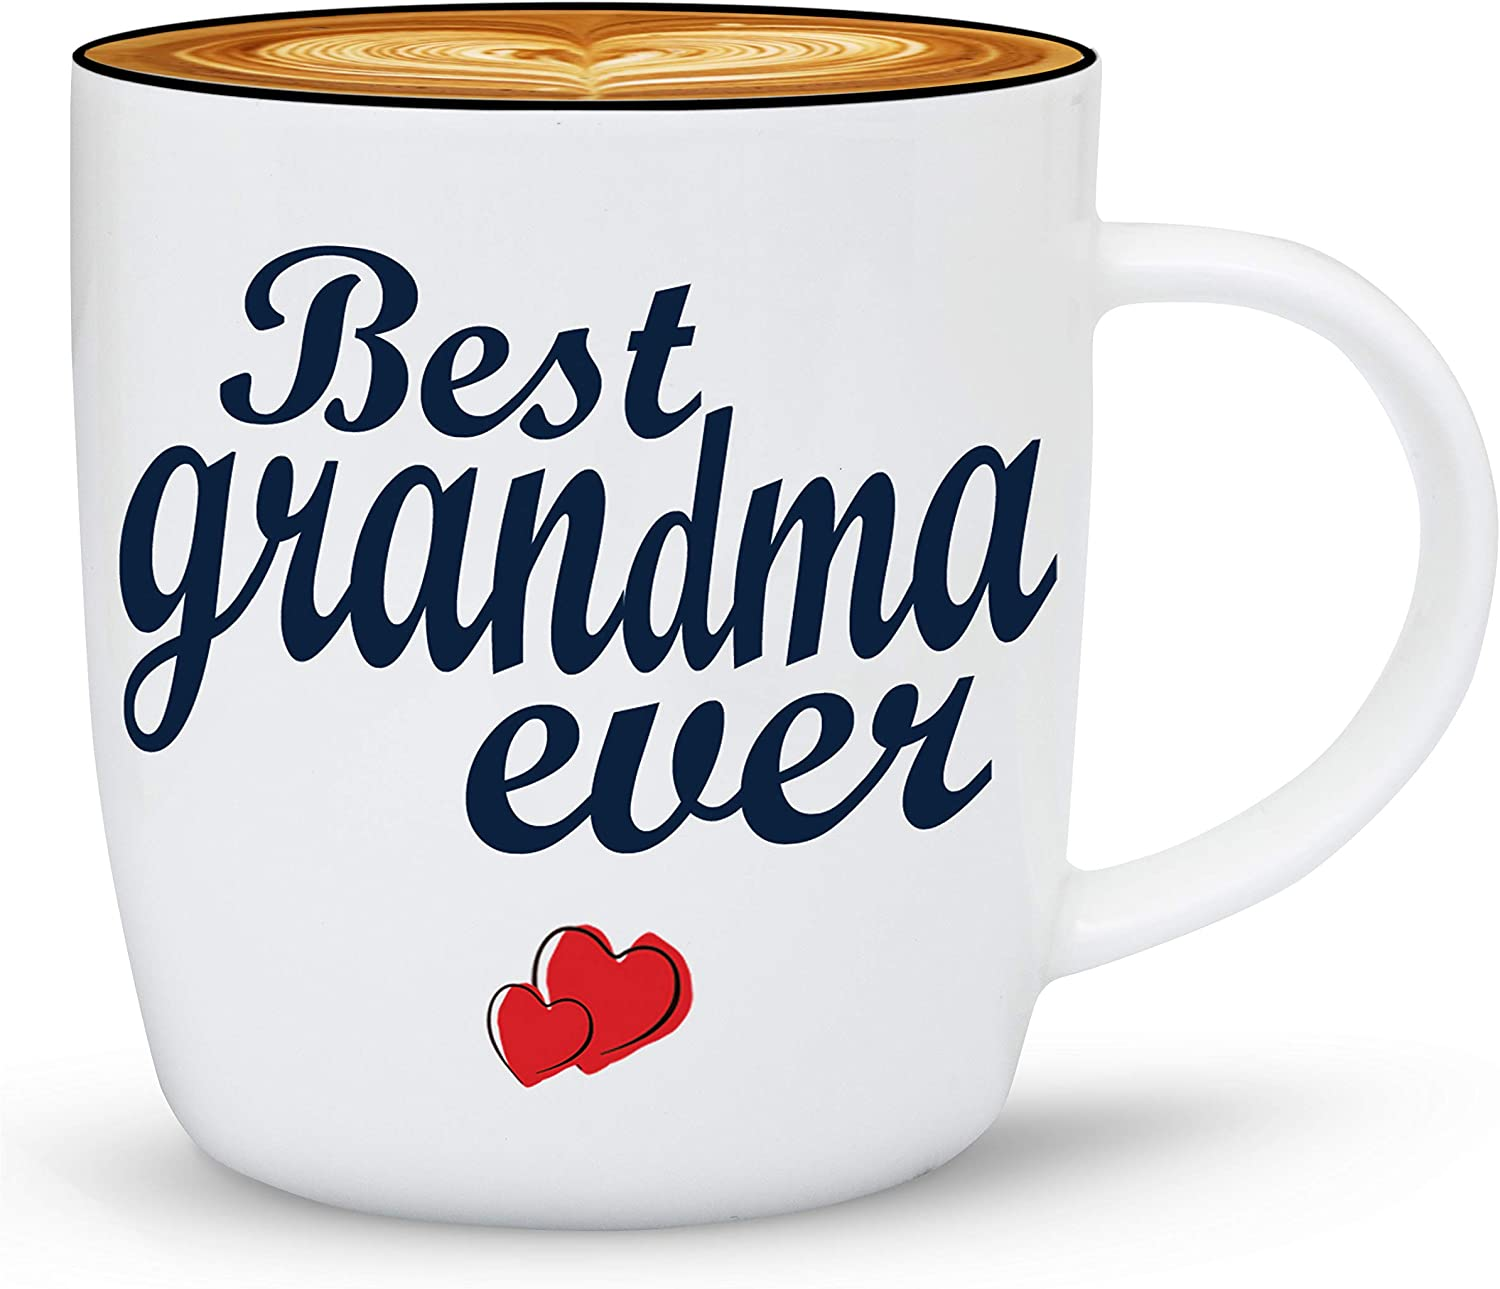 Triple Max 61% OFF Gifffted Worlds Best Grandma Ever G From Free shipping anywhere in the nation Gifts Coffee Mug